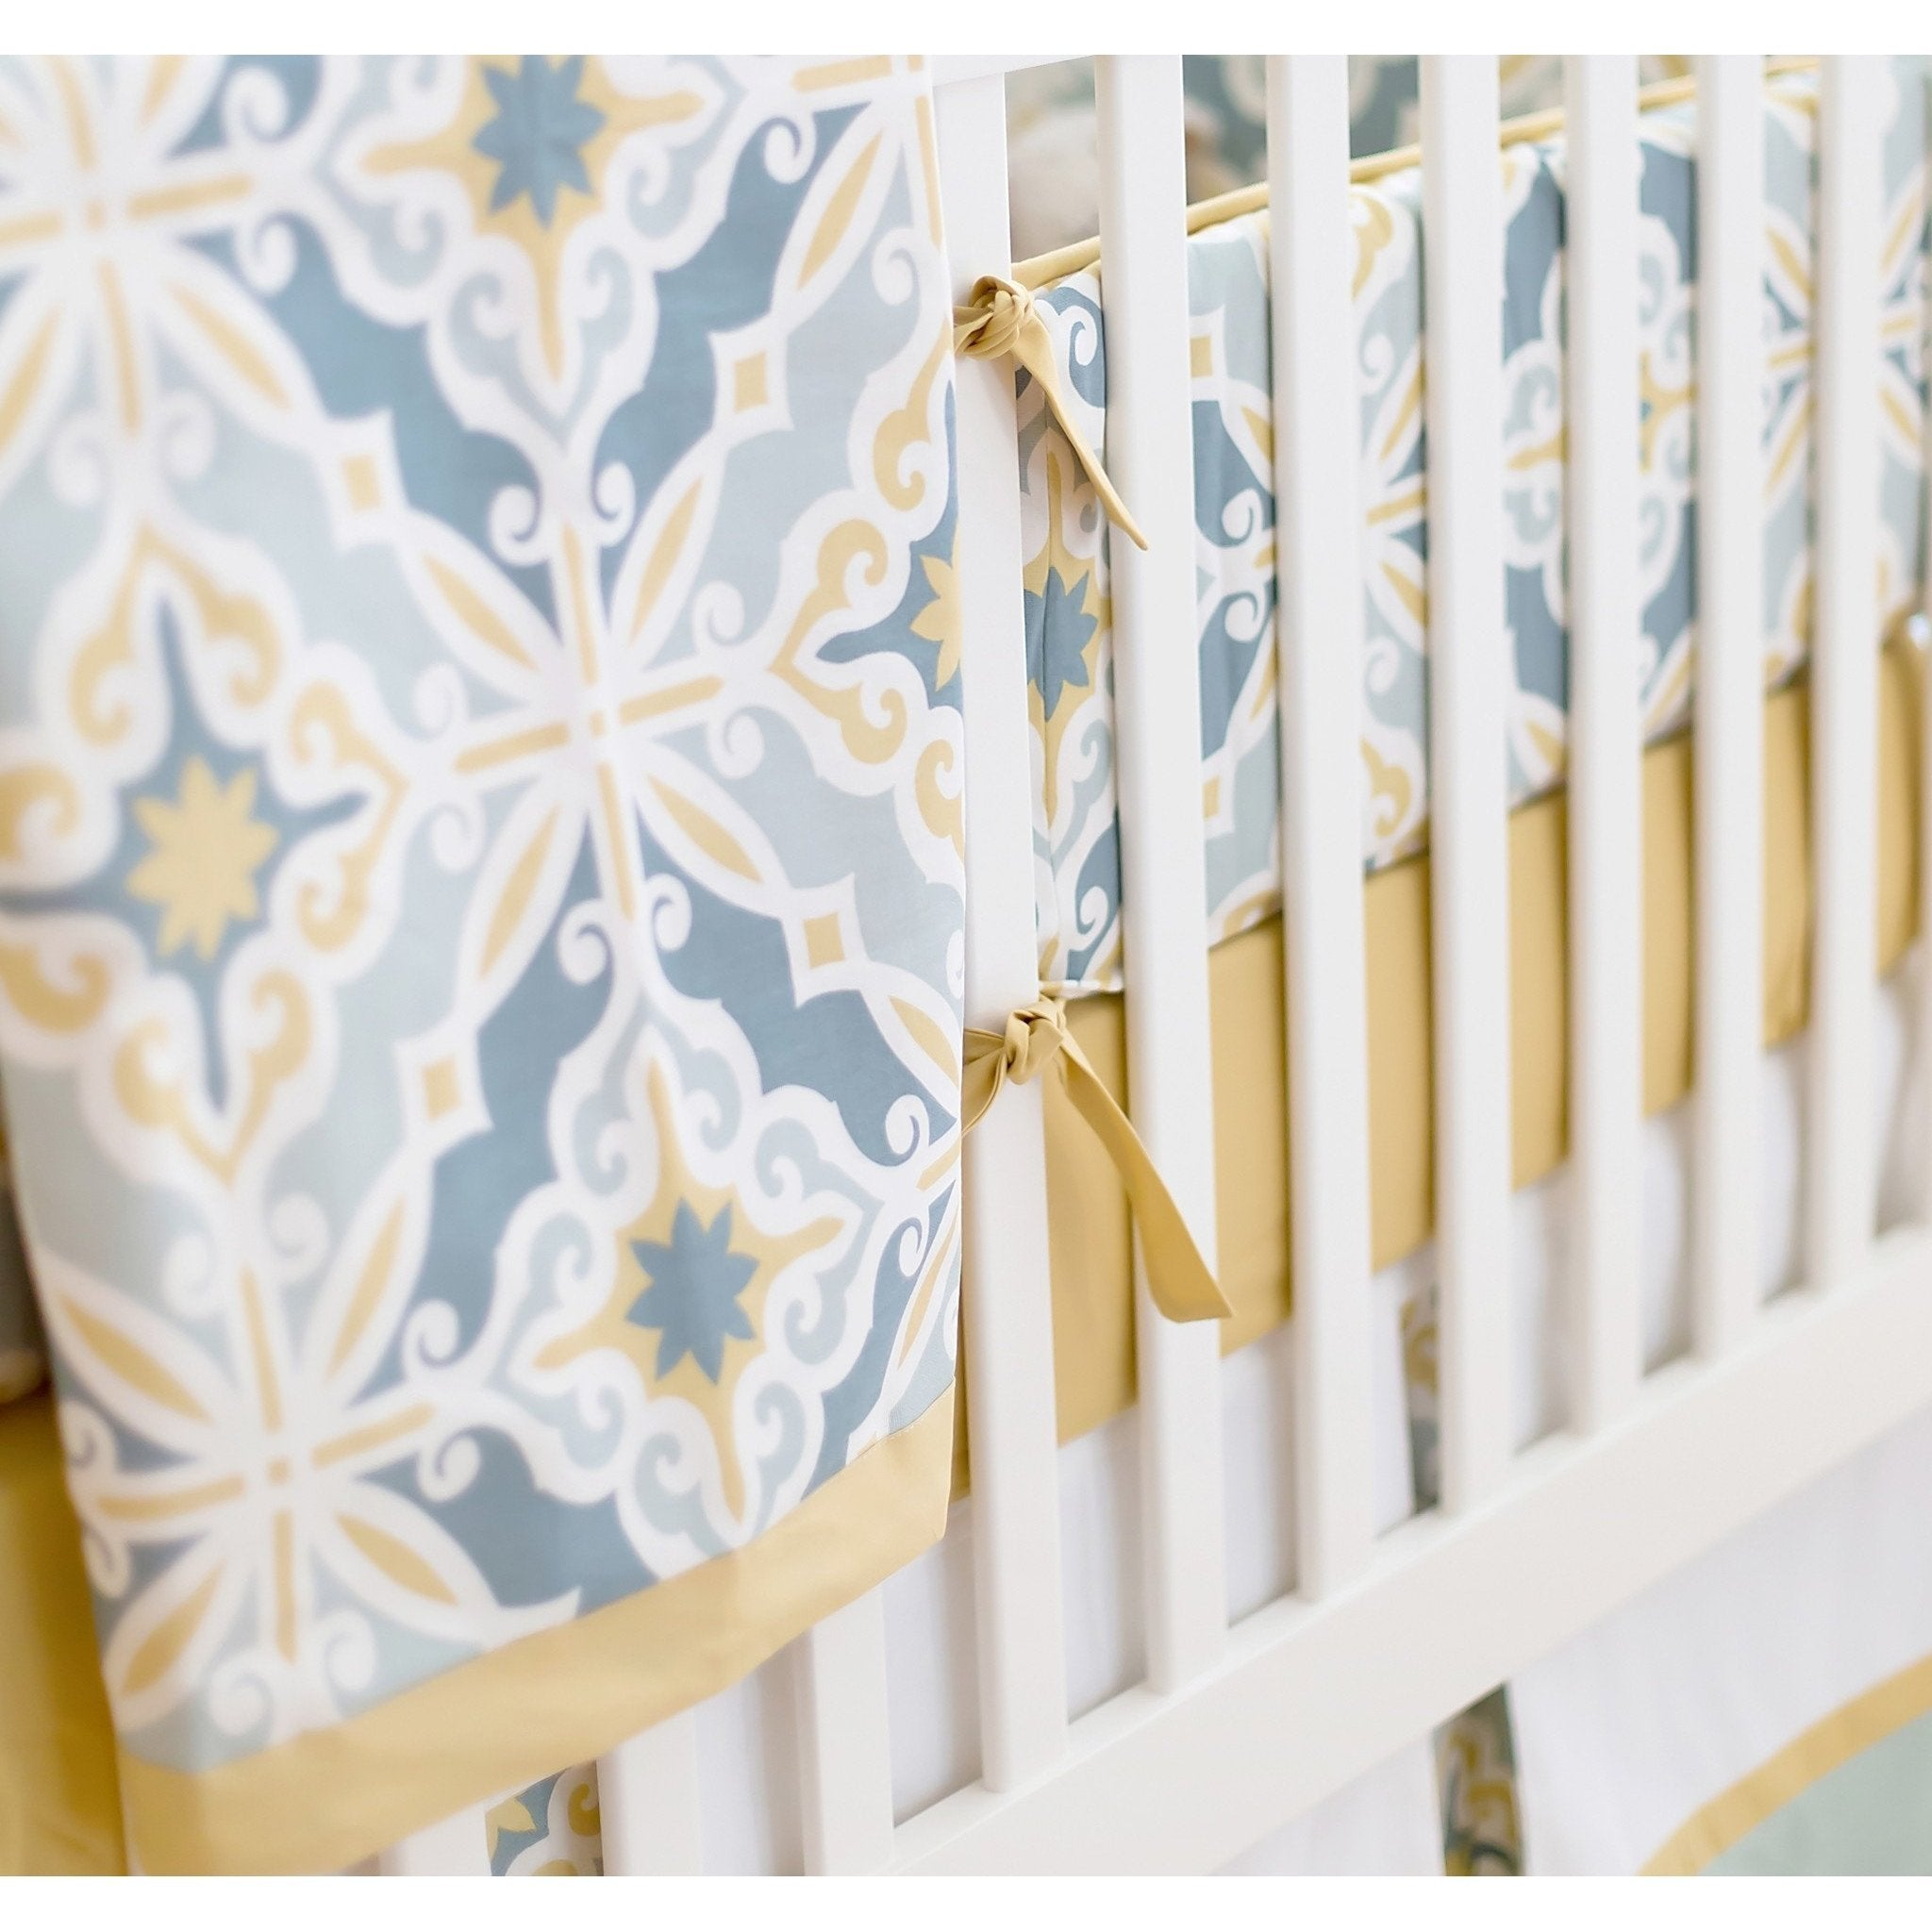 Blanket | Starburst in Gold-Baby Blanket-New Arrivals-Jack and Jill Boutique